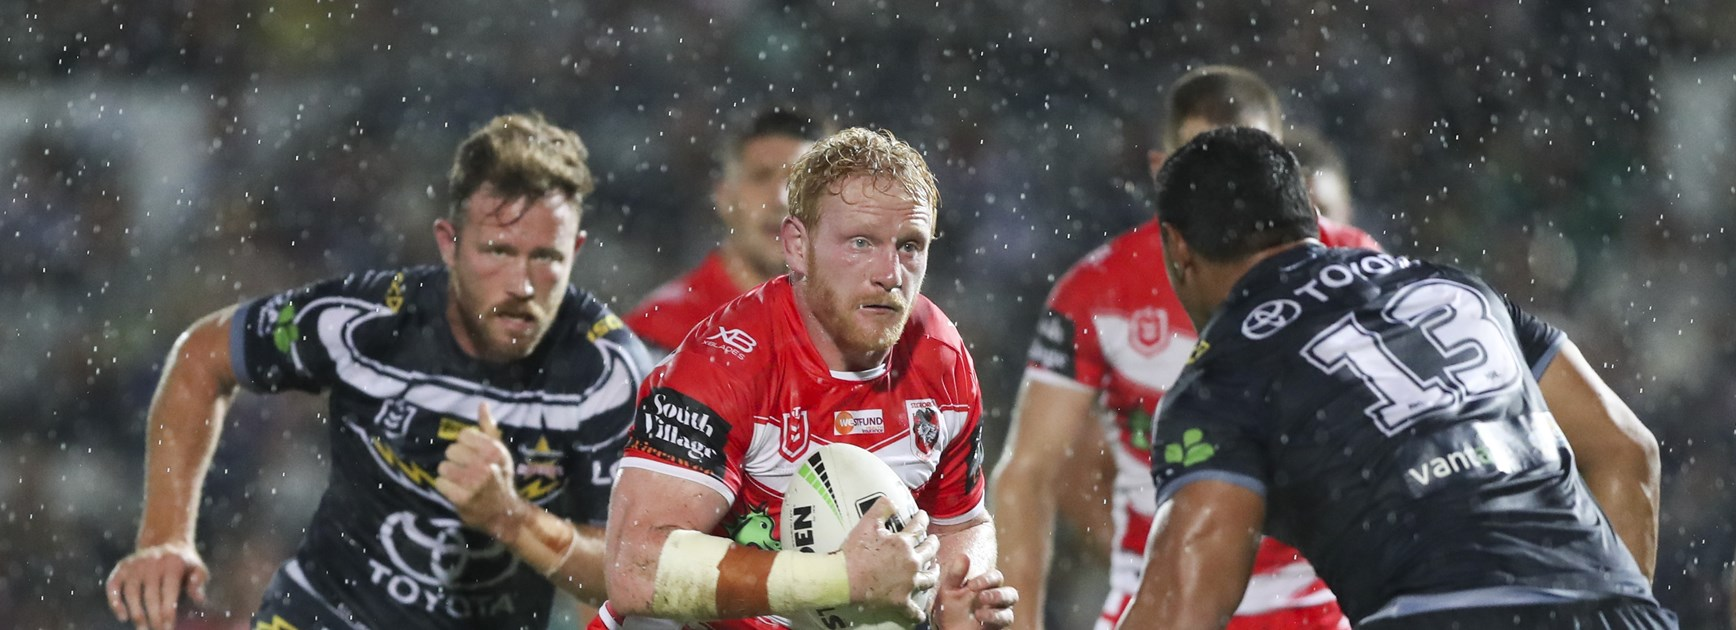 24-hour warning: Round 2 v Rabbitohs